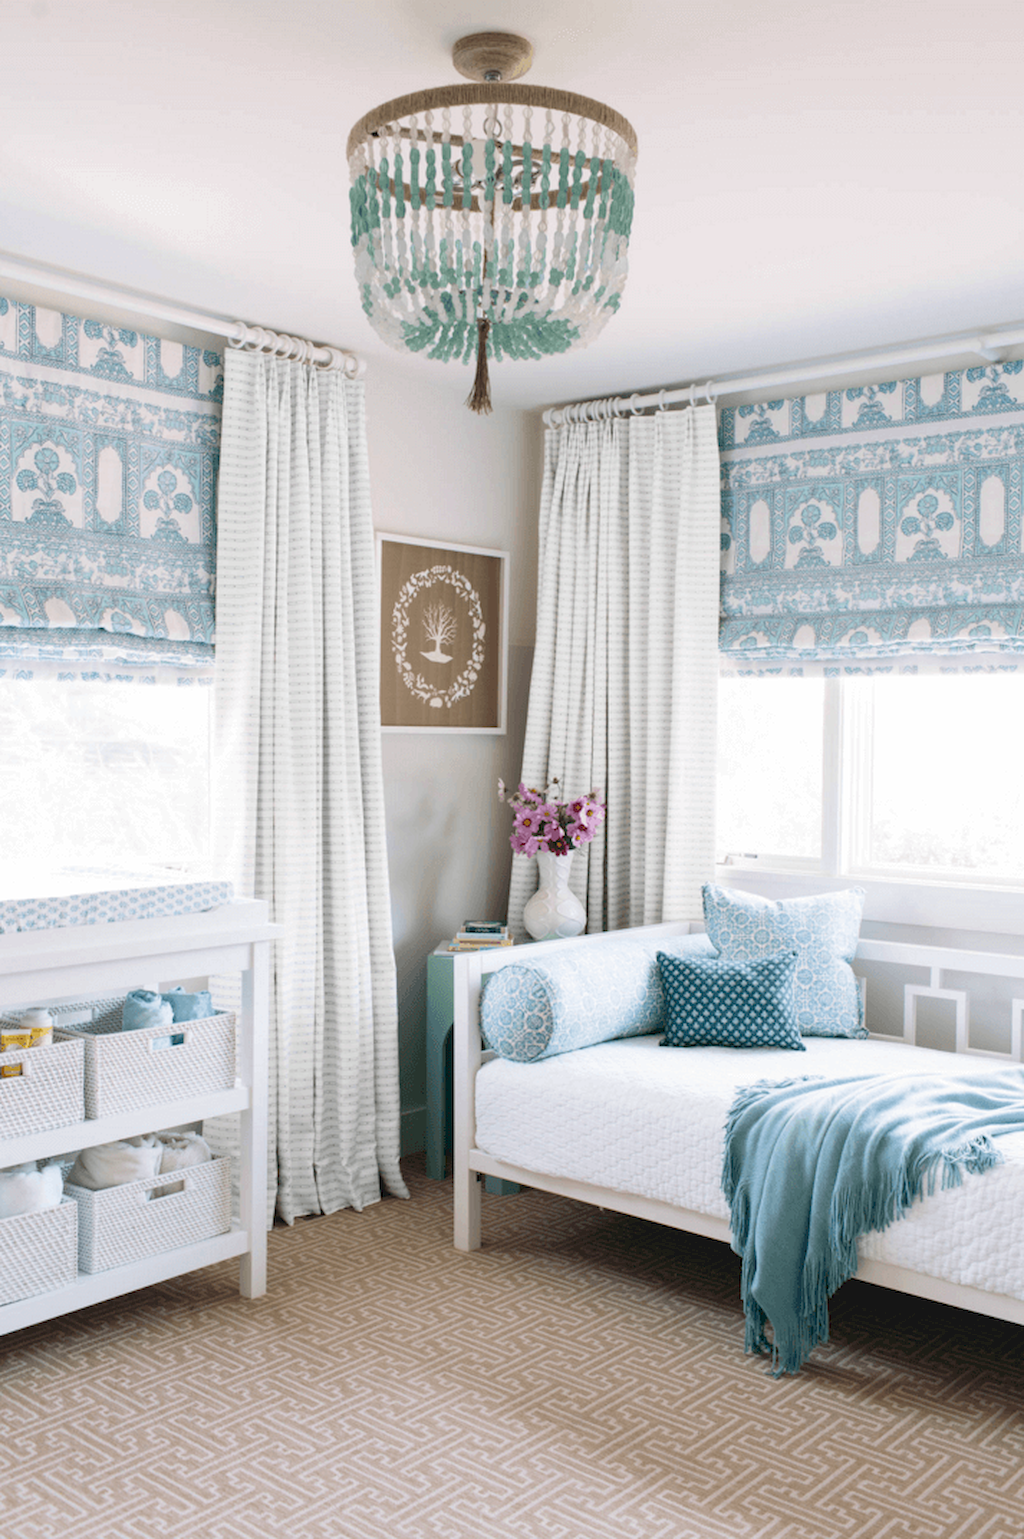 Best Baby Girl Room Design: Most Popular Decorating Ideas For Baby Nursery Rooms